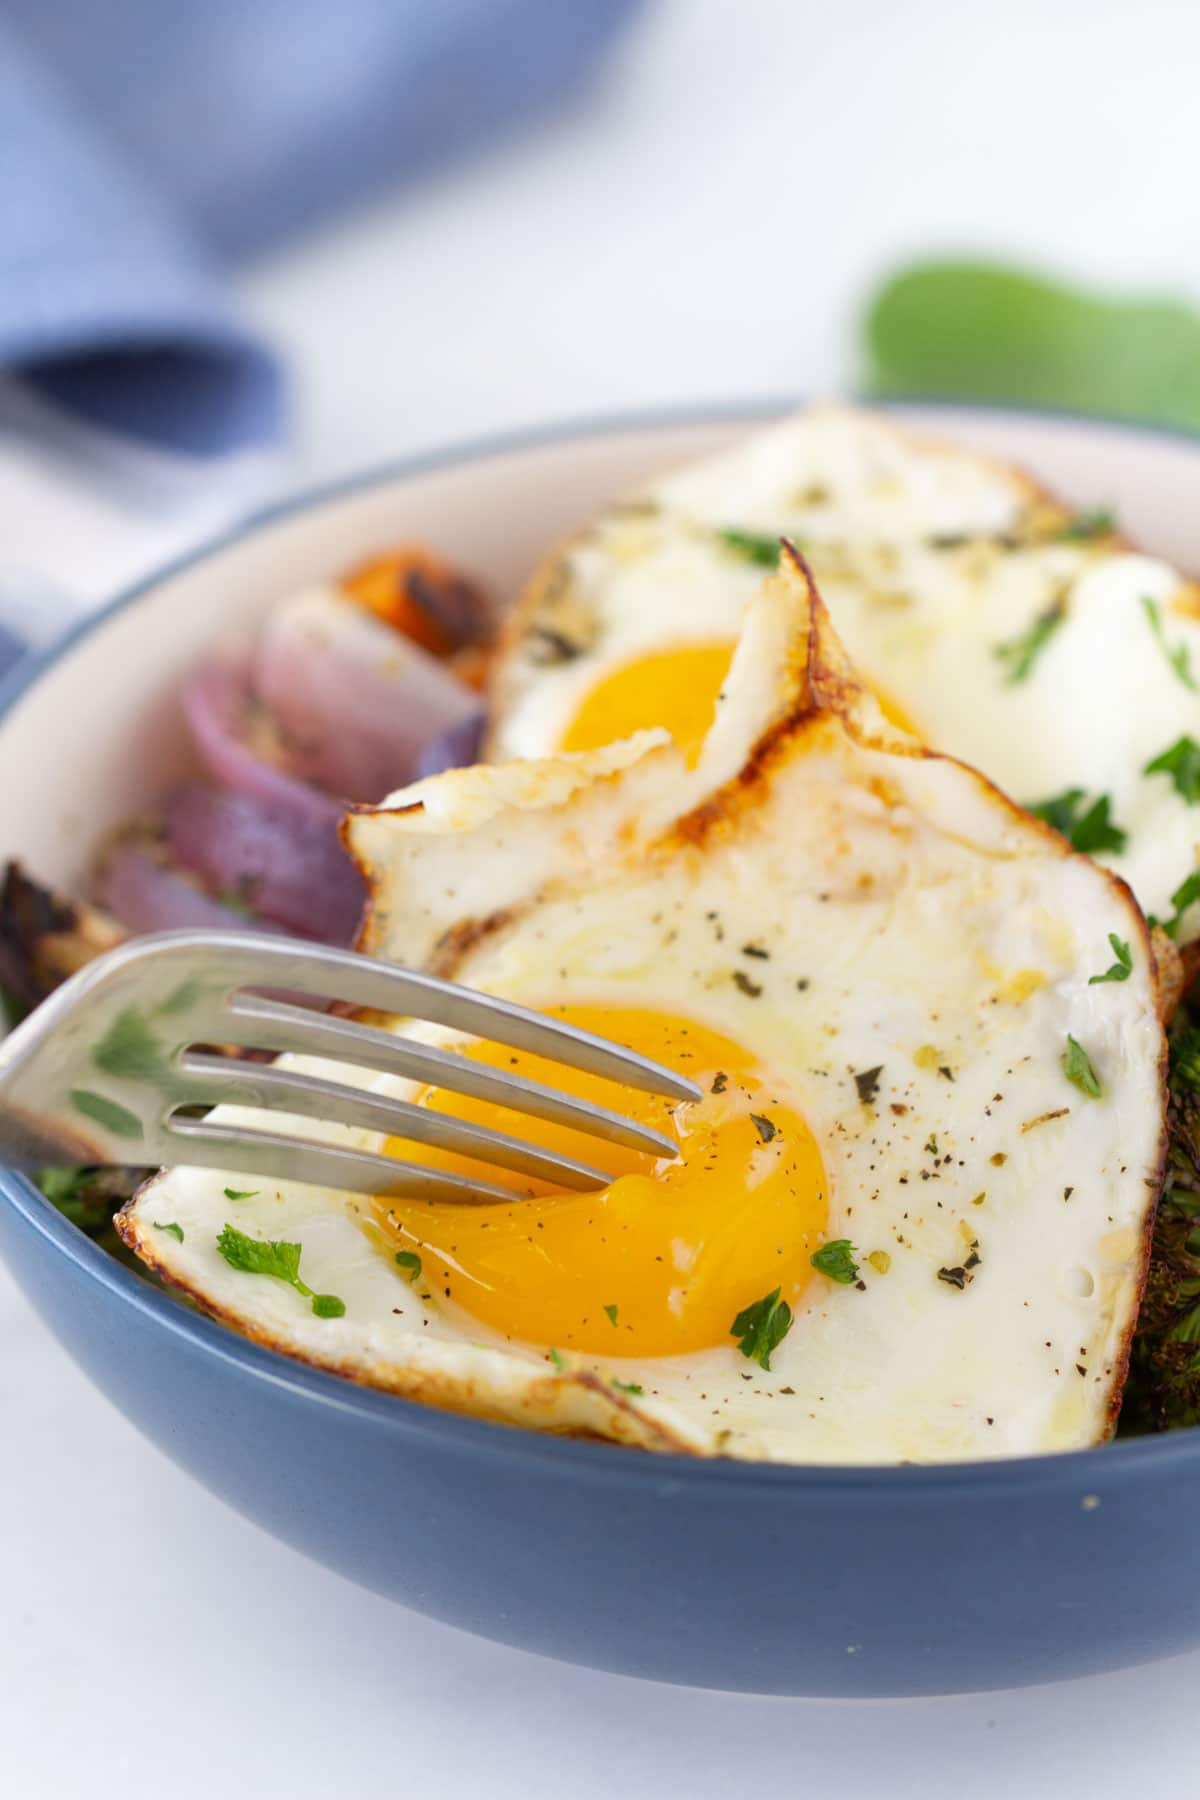 fried eggs on top of roasted veggies with fork cutting through